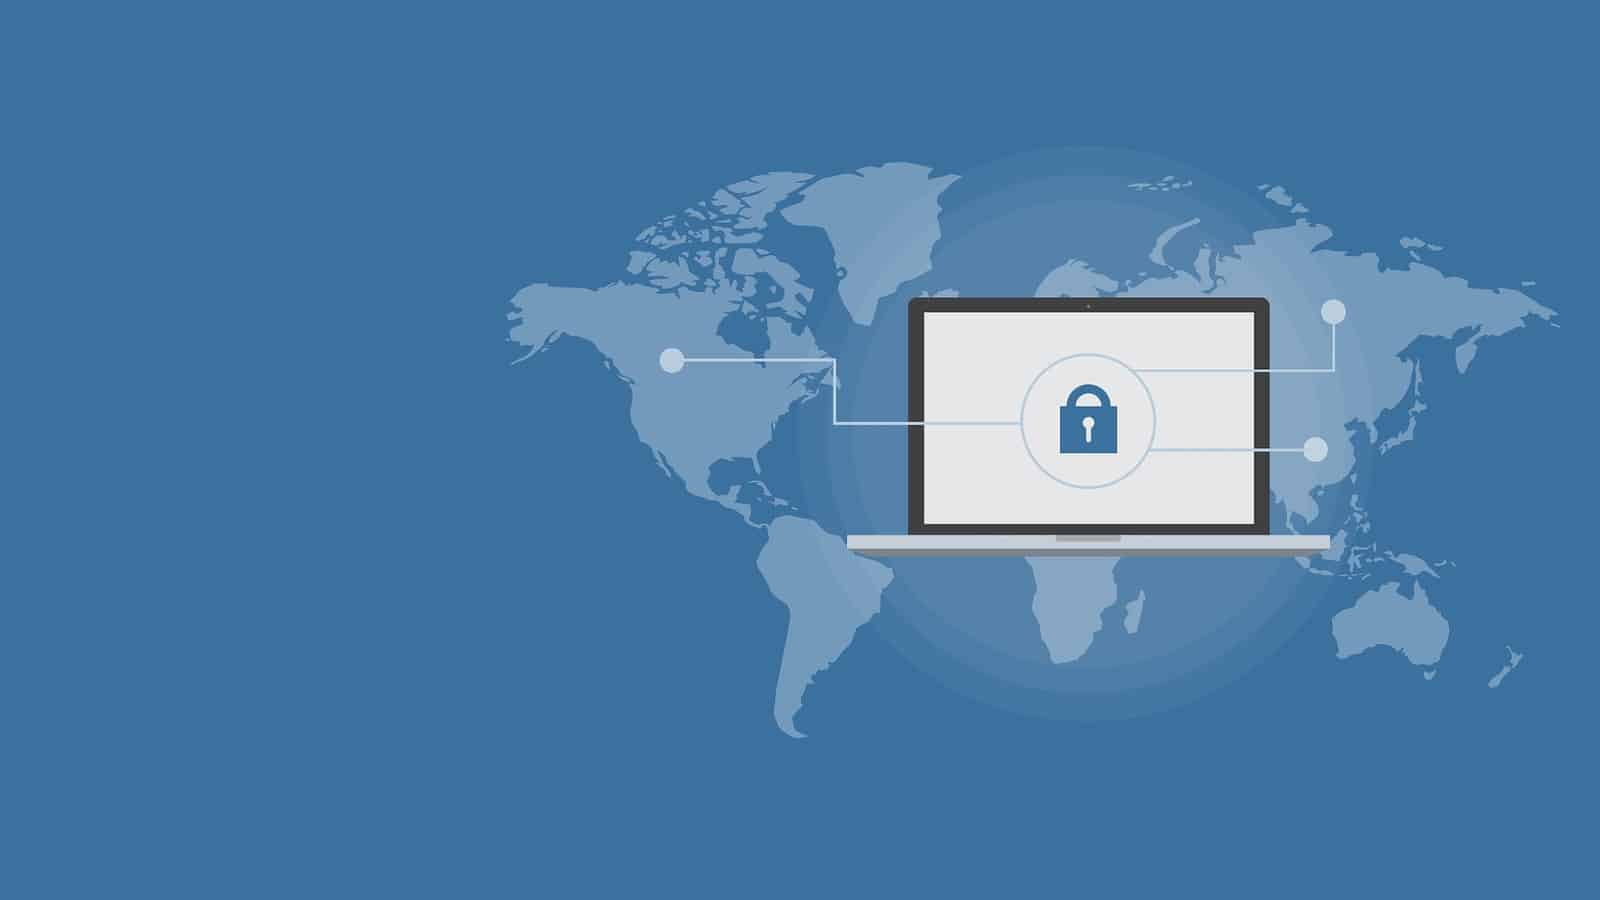 Codvo ensures that there is Cloud security behind the threats around the internet world